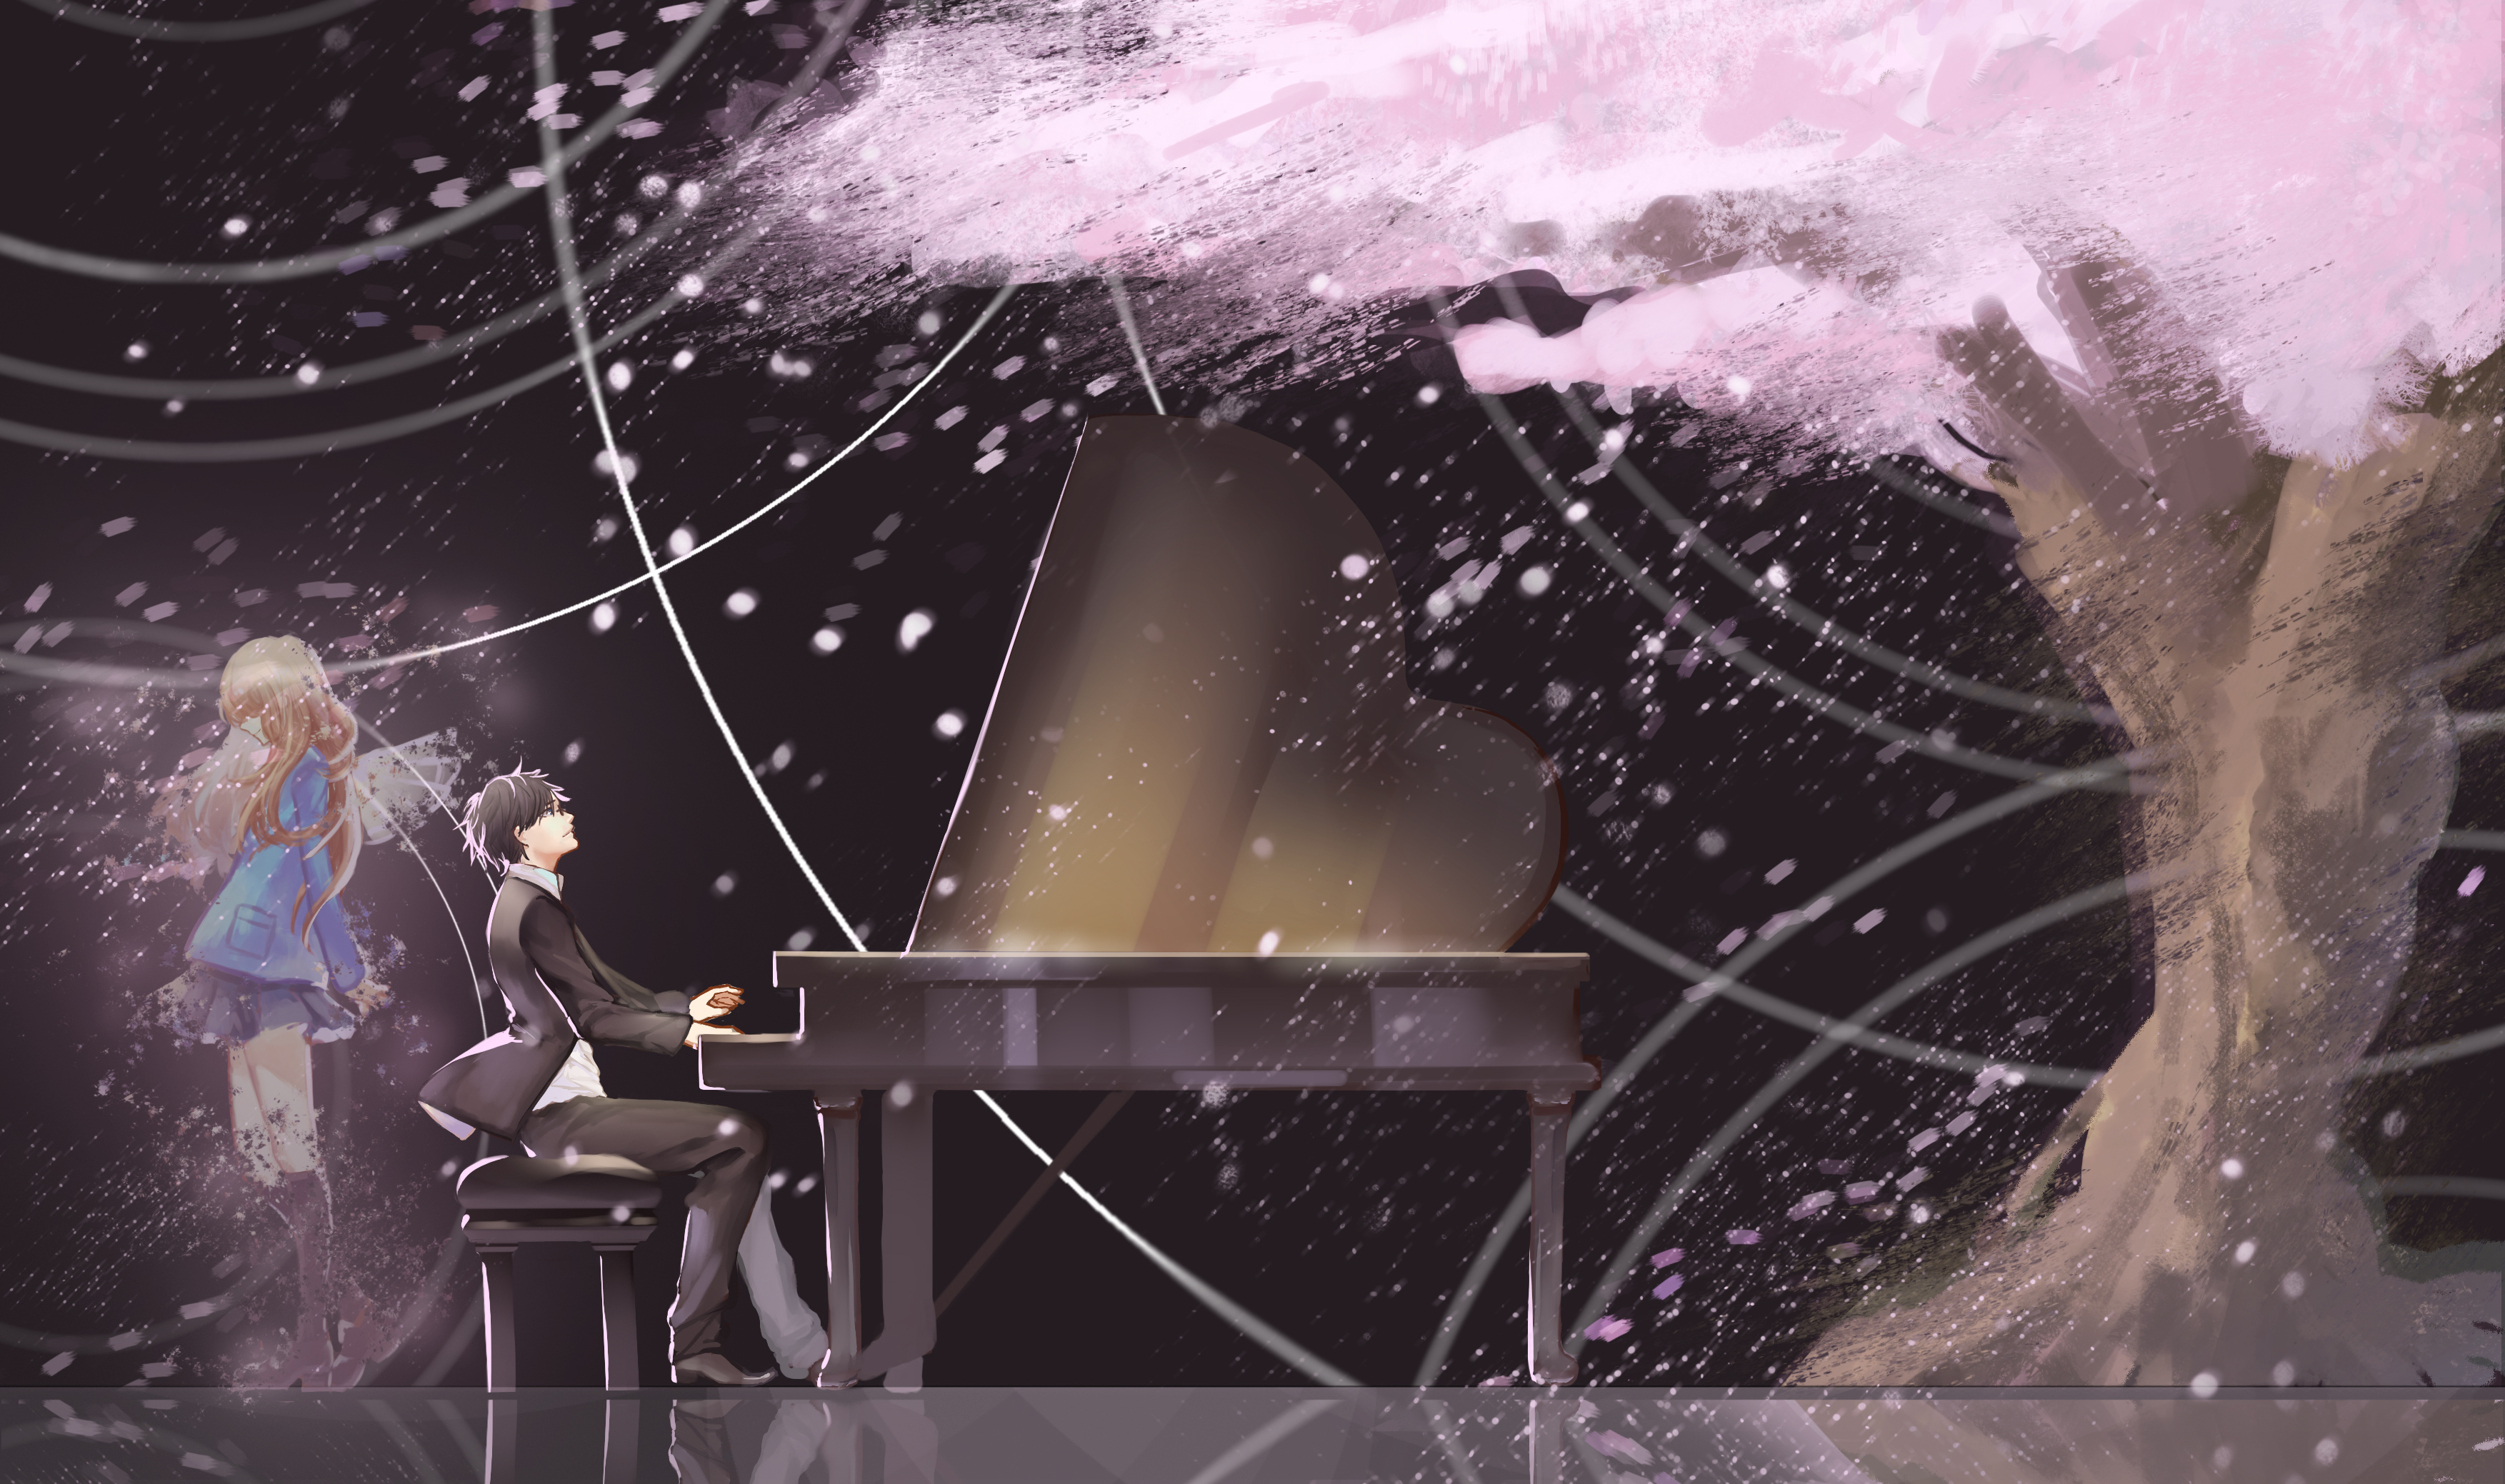 Your Lie In April Hd Wallpaper: 110 Your Lie In April HD Wallpapers